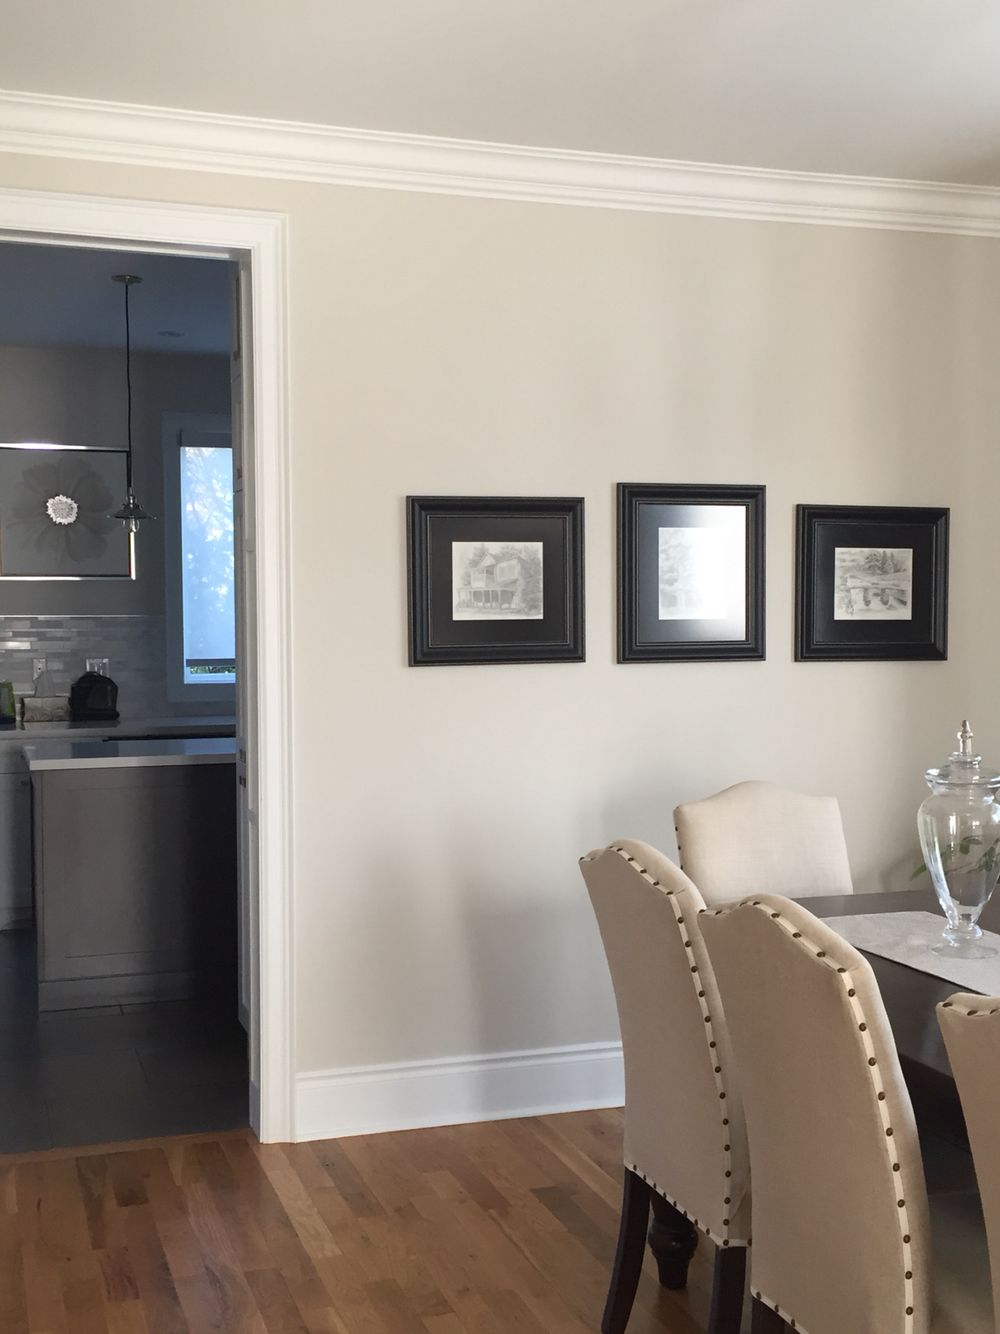 bm pale oak great soft grey to go with light brown on best interior paint colors id=51571